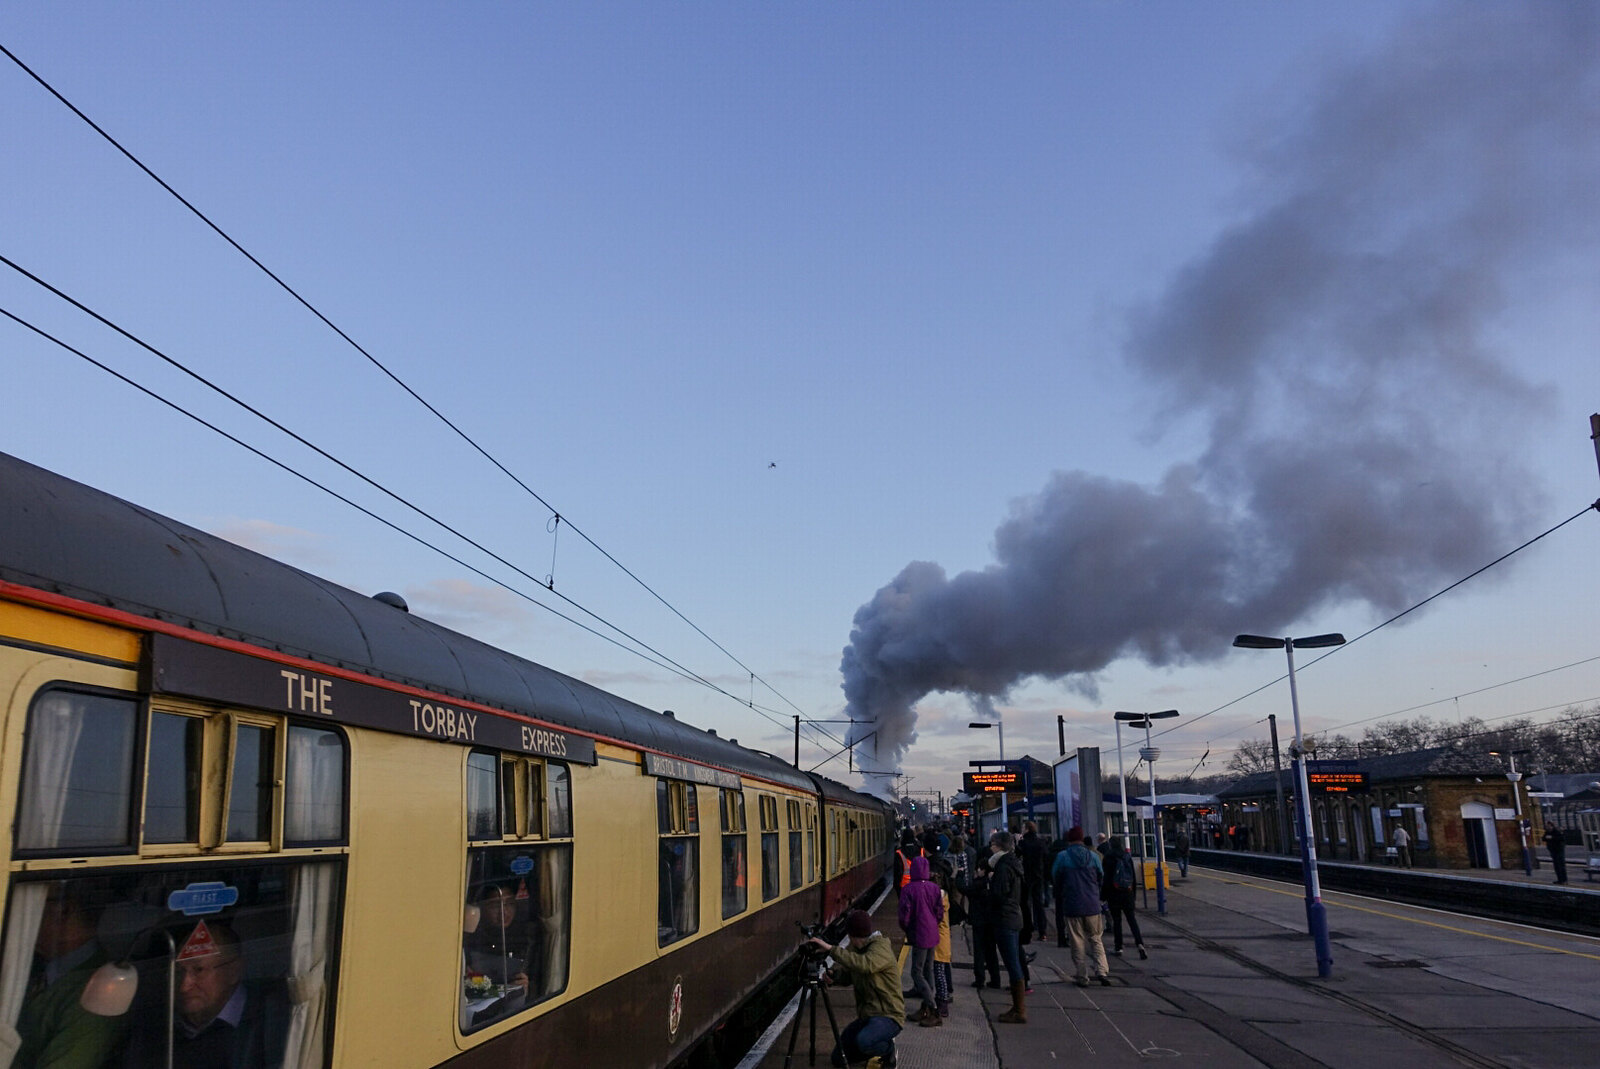 The Flying Scotsman passes through Finsbury Park Station